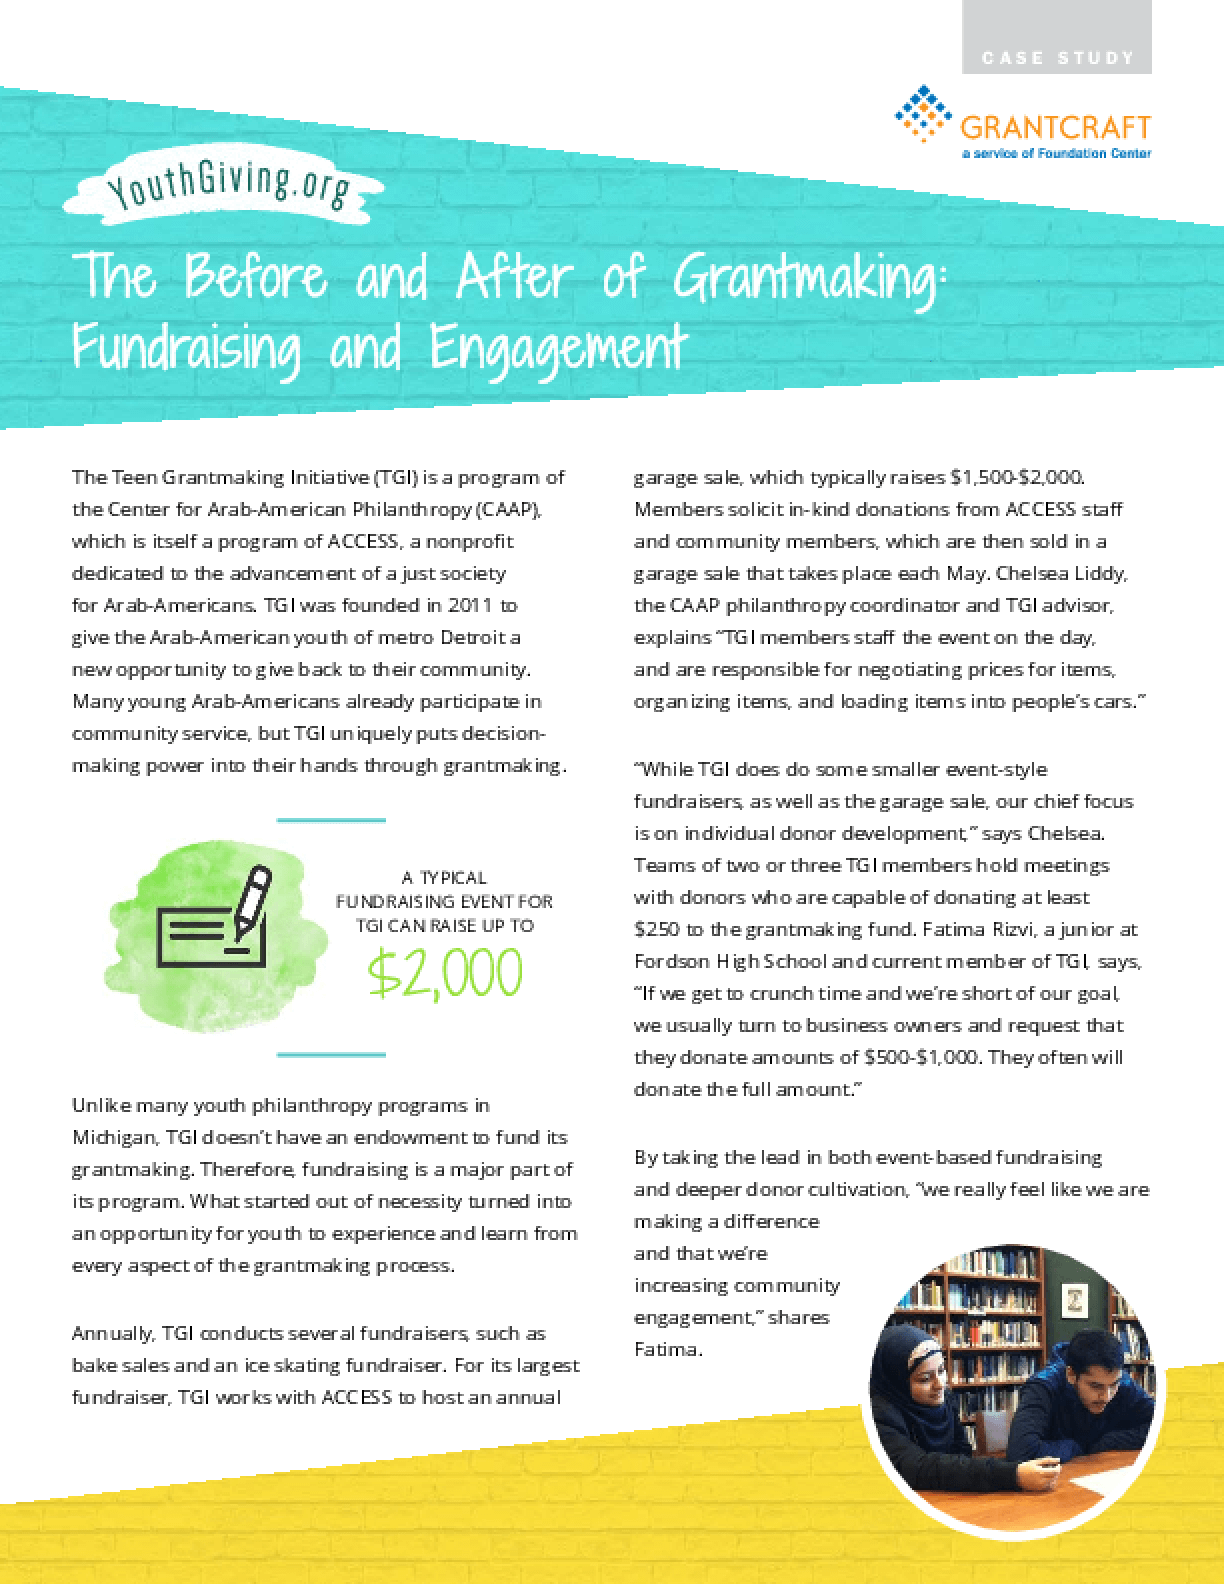 The Before and After of Grantmaking: Fundraising and Engagement